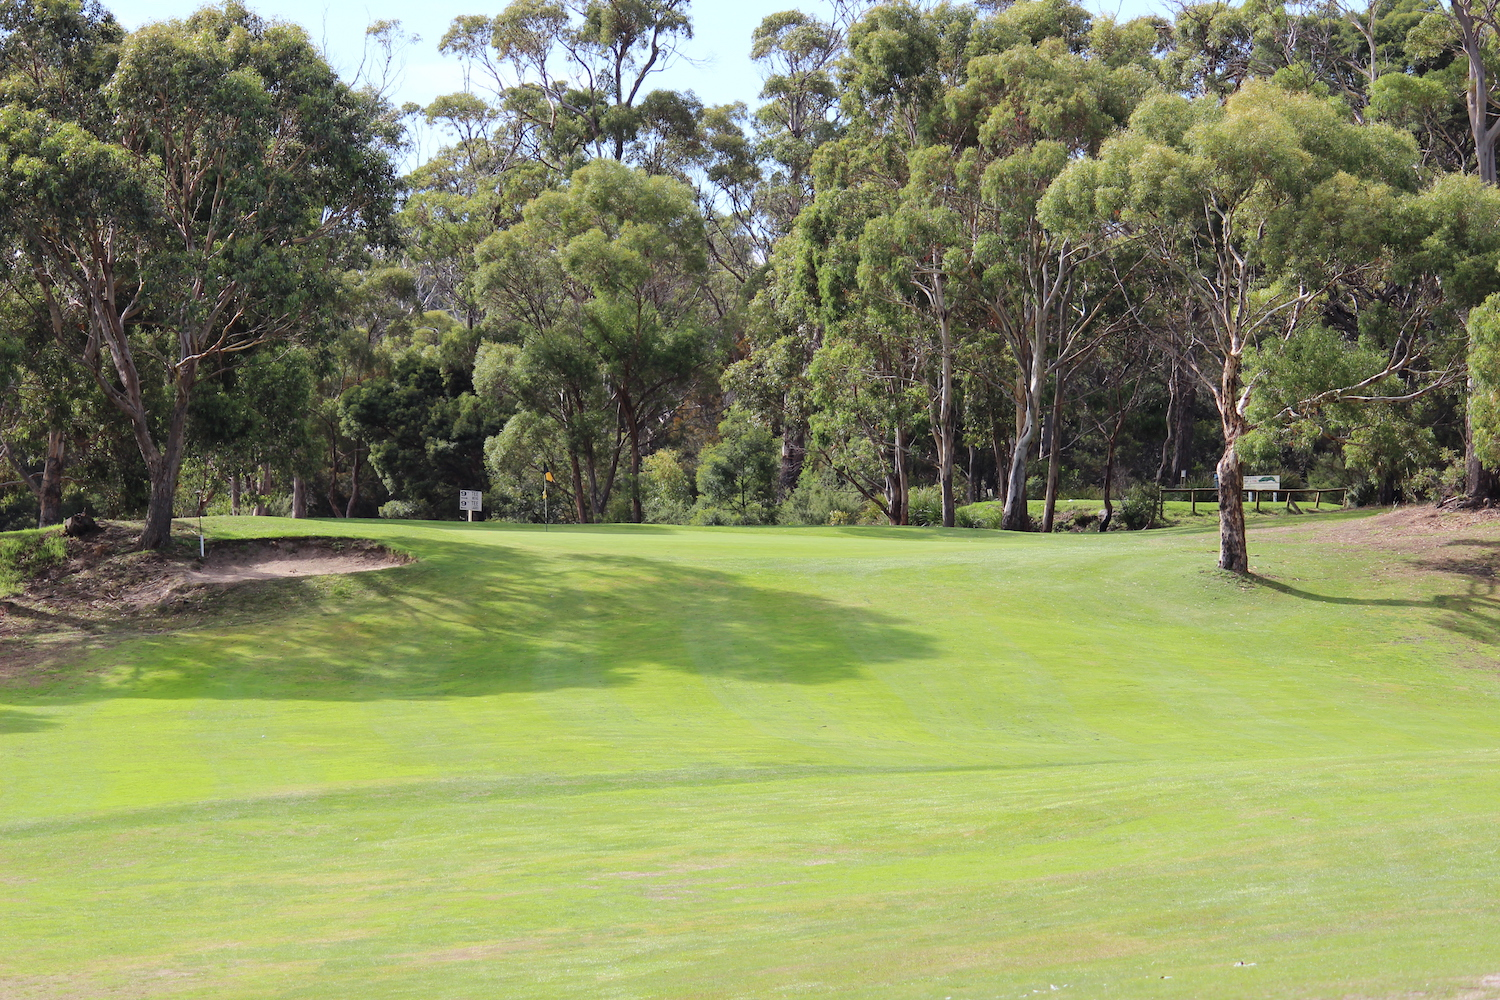 Hole 6    A tough par 3 with an elevated green with a bunker on the left, large tree on the right and steep ungroomed surrounds behind.    Men: 155 metres, Par 3, Stroke Index 11   Ladies: 117 metres, Par 3, Stroke Index 13/31